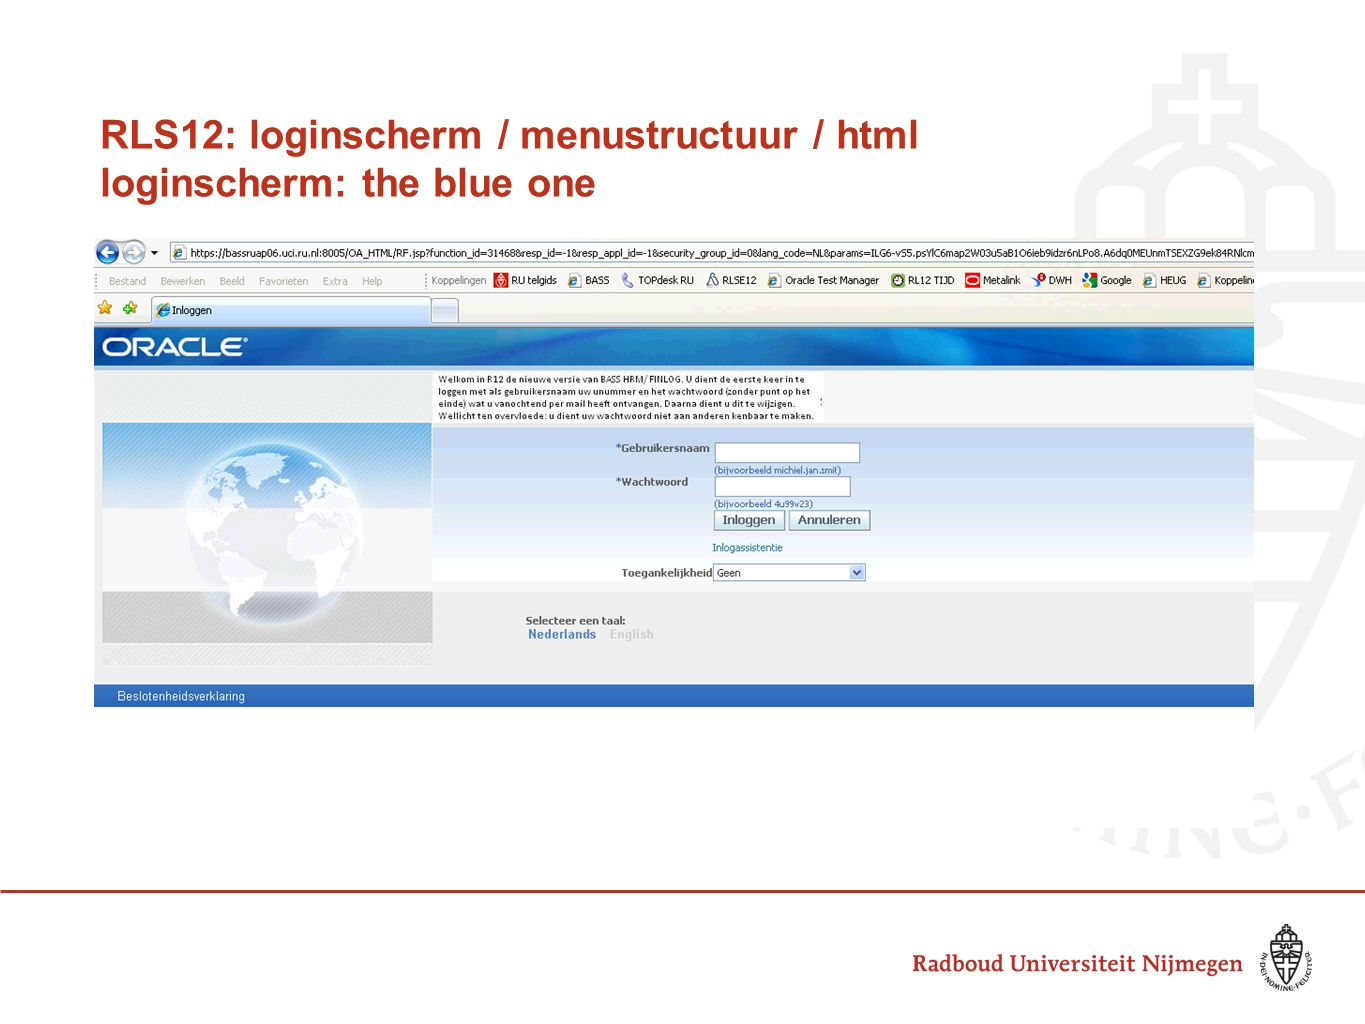 RLS12: loginscherm / menustructuur / html loginscherm: the blue one